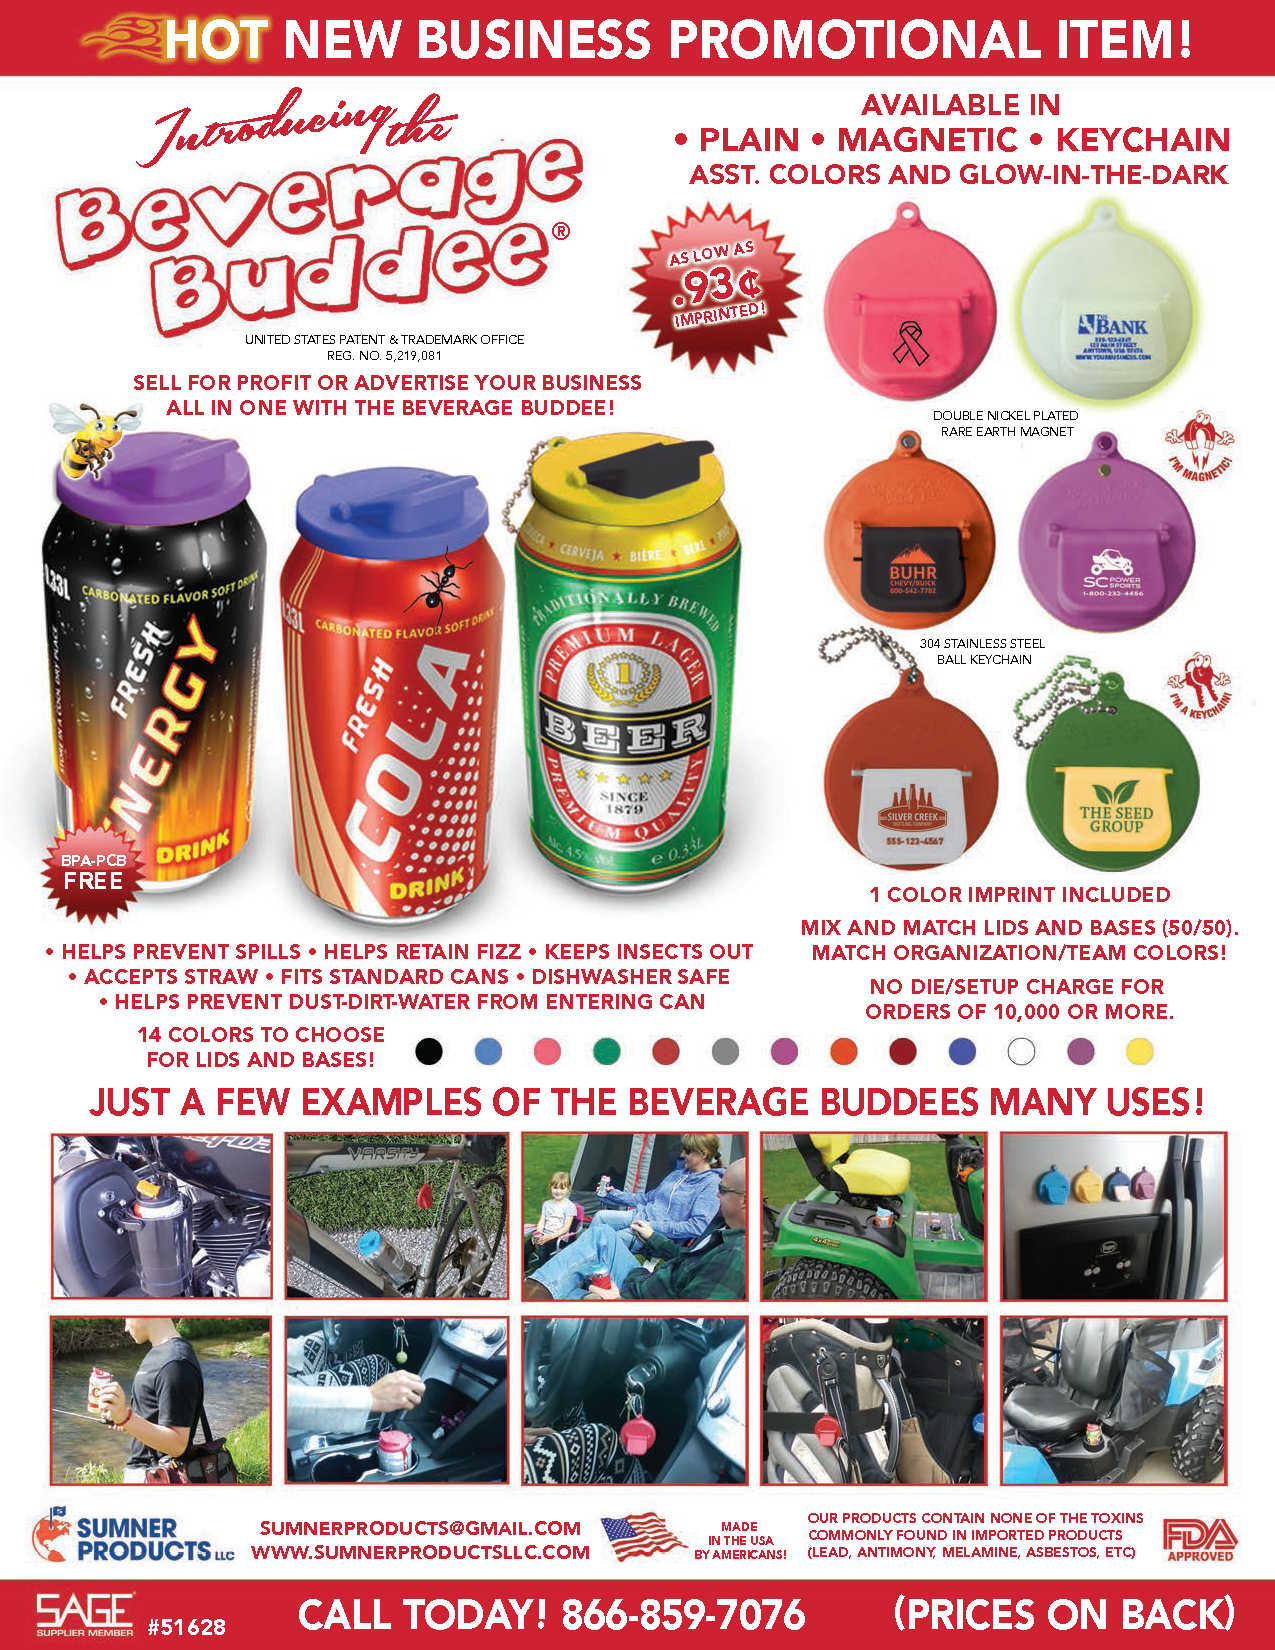 Sumner Products - Promotional Flyer